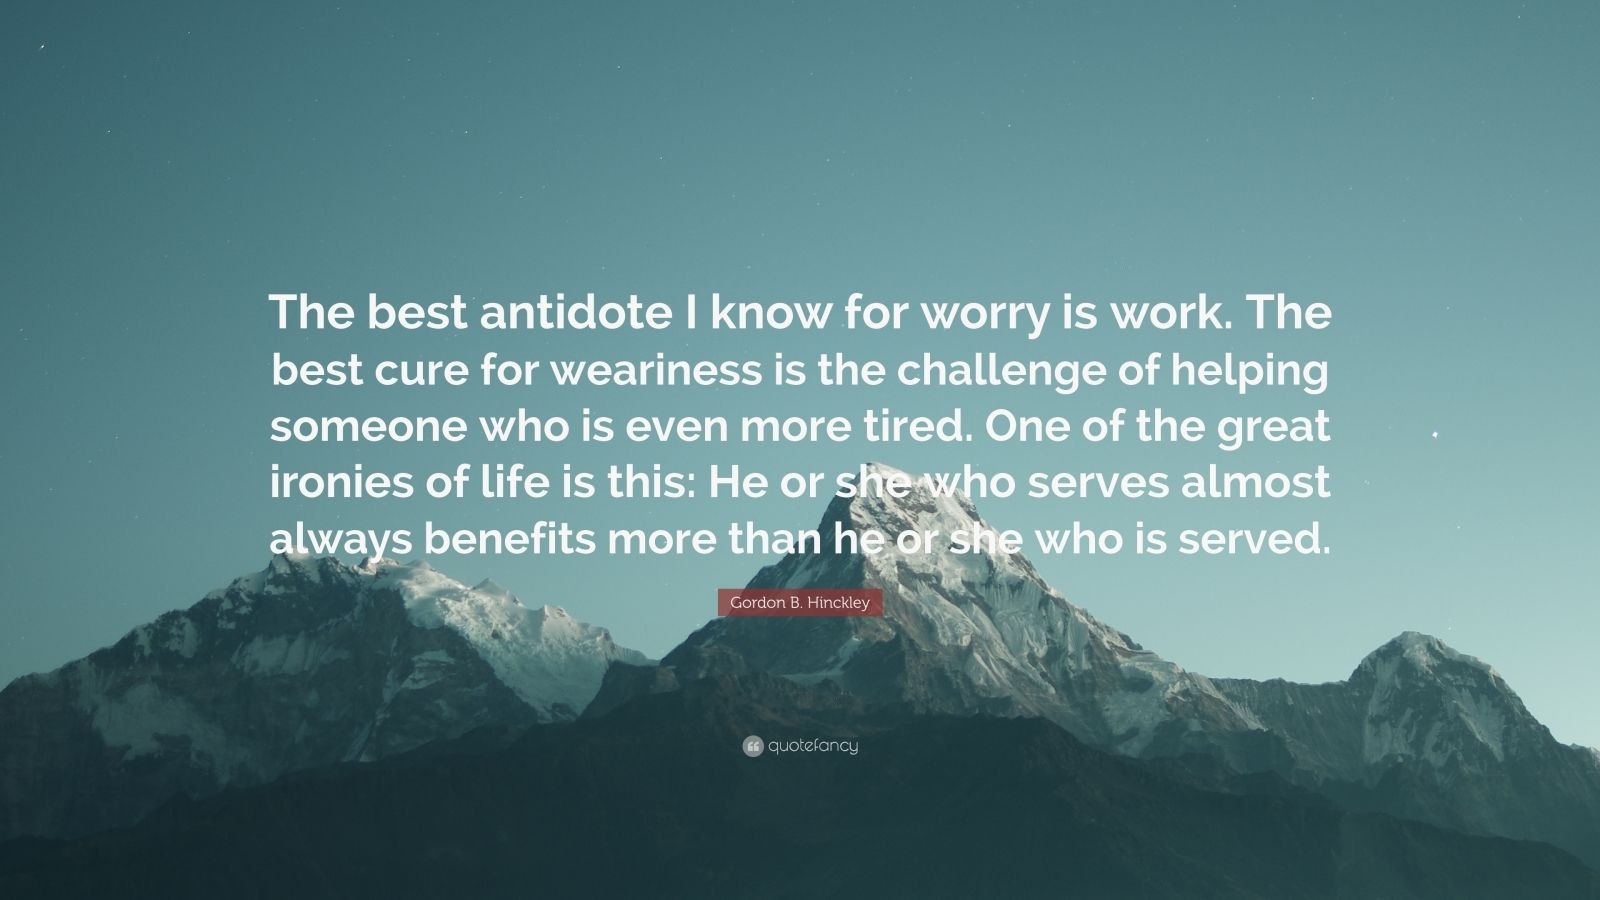 """Gordon B. Hinckley Quote: """"The best antidote I know for worry is work. The best cure for weariness is the challenge of helping someone who is even more tired. One of the great ironies of life is this: He or she who serves almost always benefits more than he or she who is served."""""""